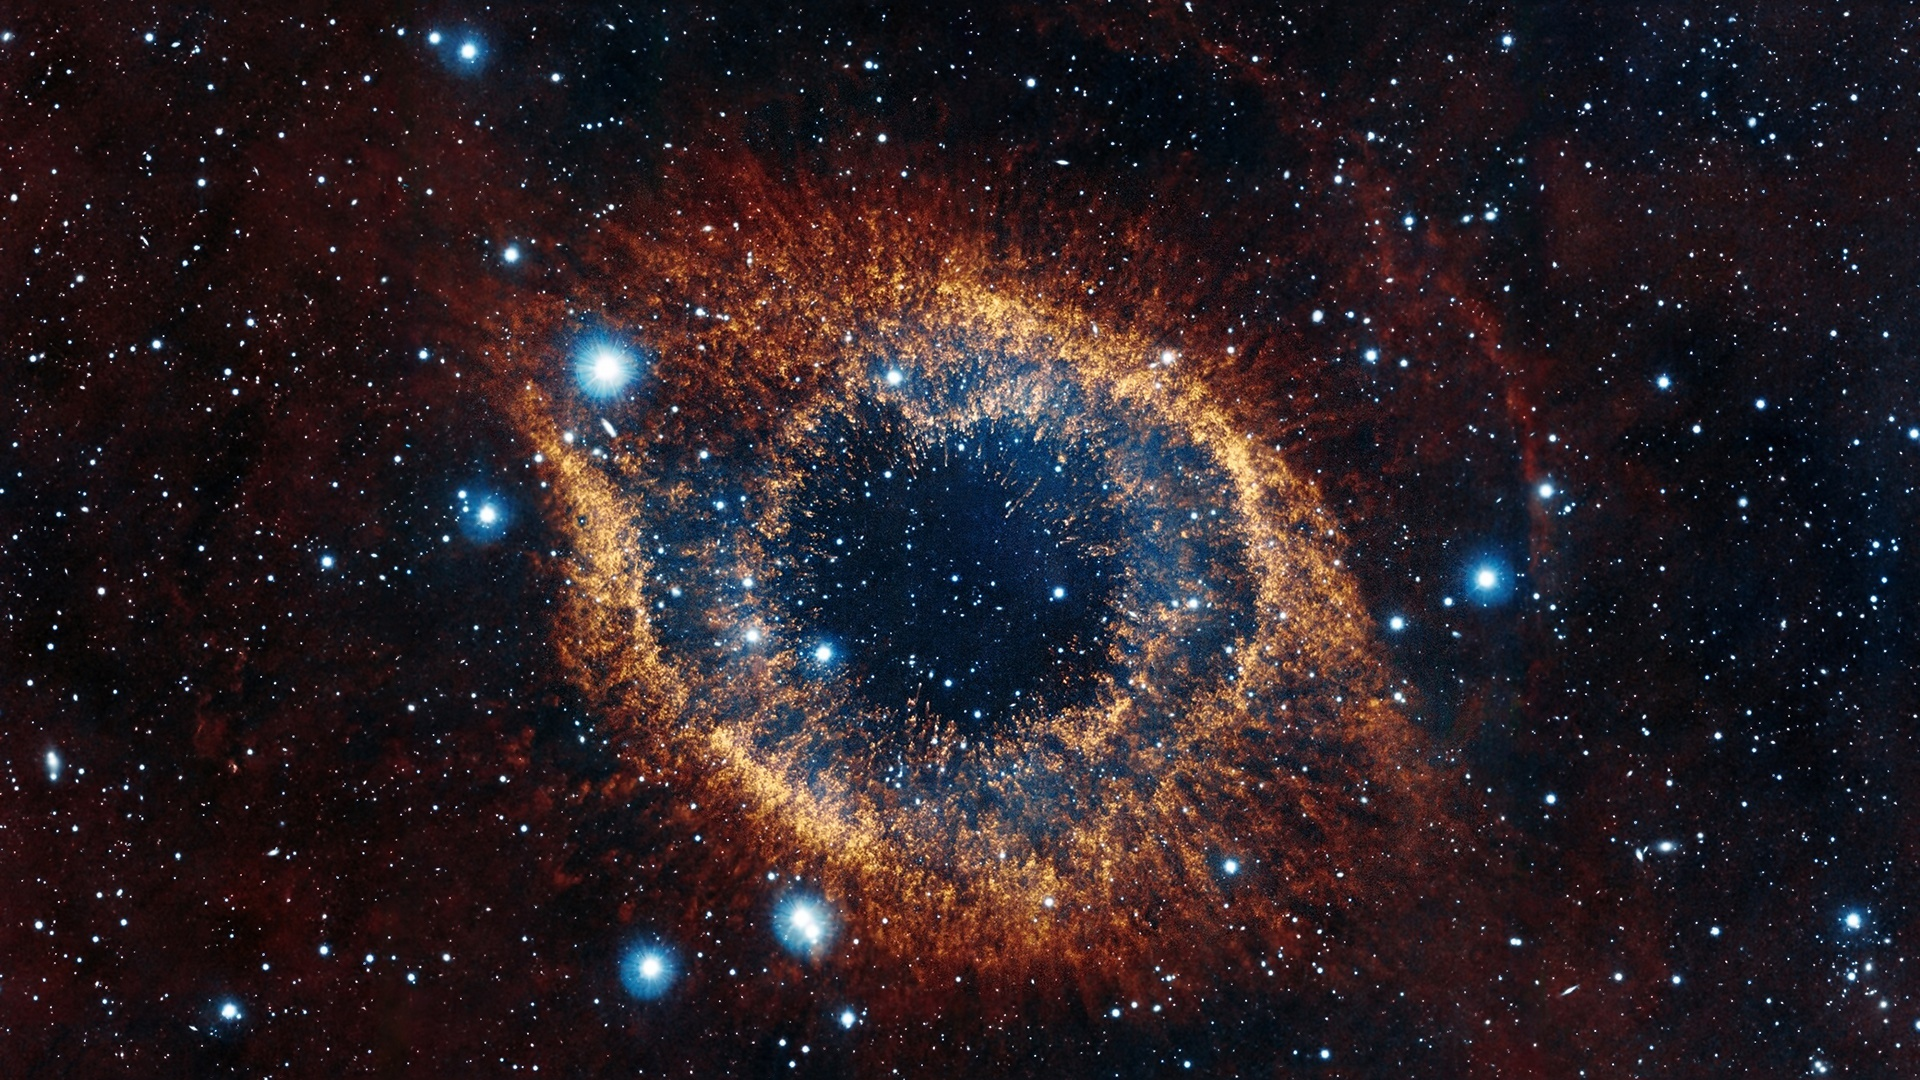 Download 1920x1080 Wallpaper eye of nebula real space HD